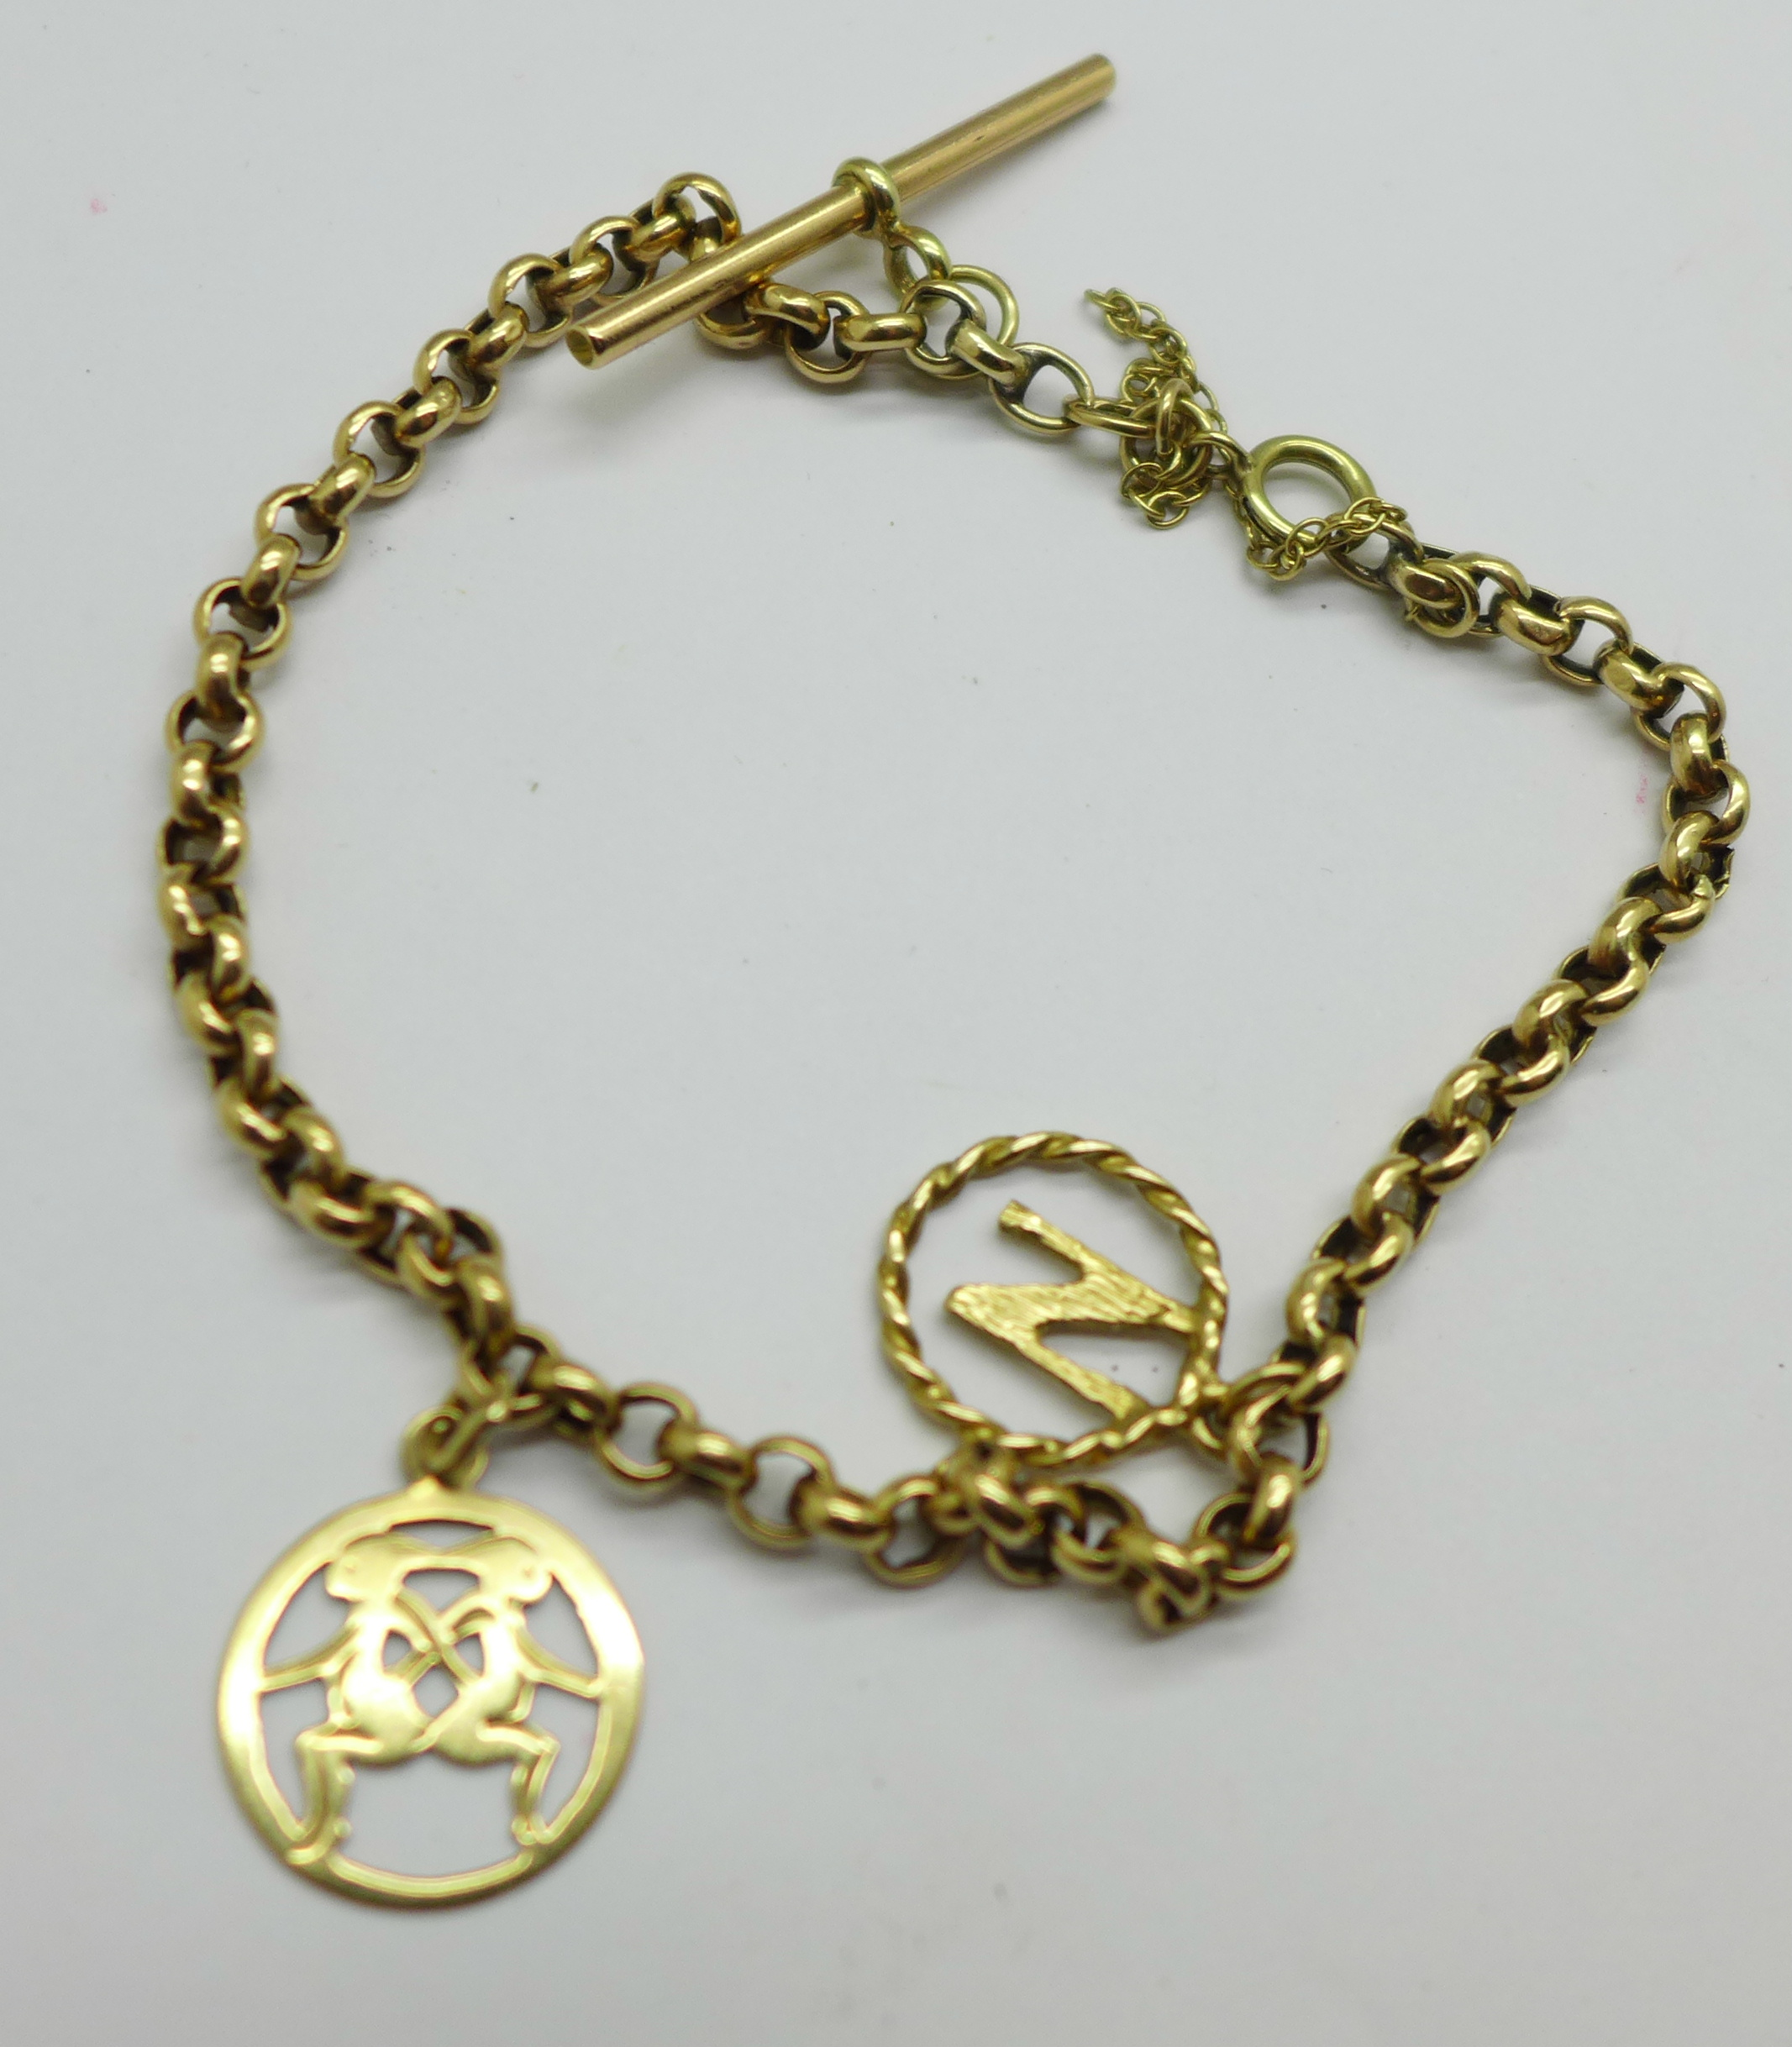 A 9ct gold bracelet with two charms, 5.0g